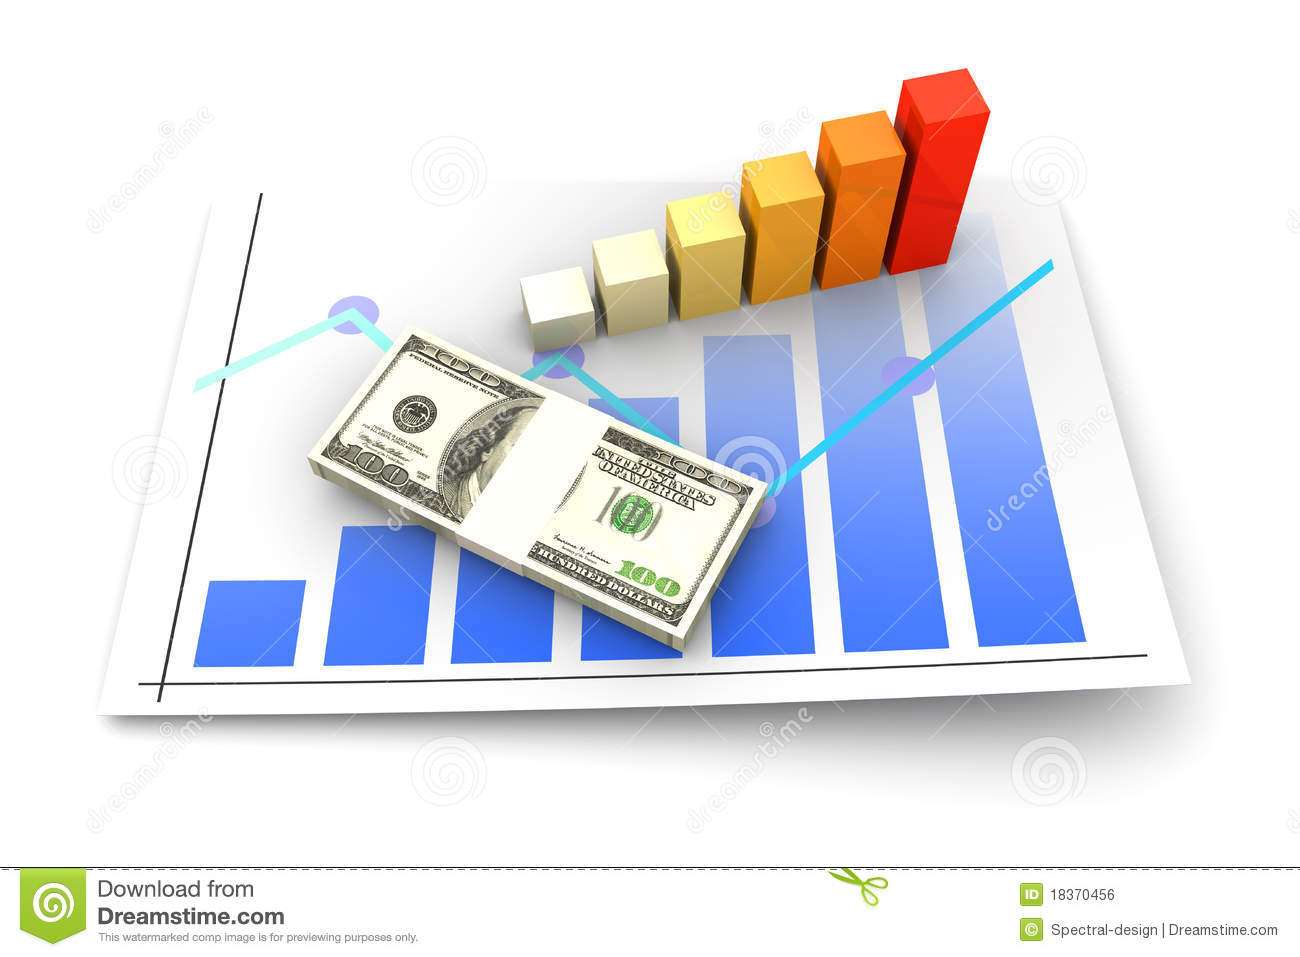 an analysis of the financial situation in the united states World economic situation and prospects united nations  the development policy and analysis division  federal reserve of the united states financial stability board.